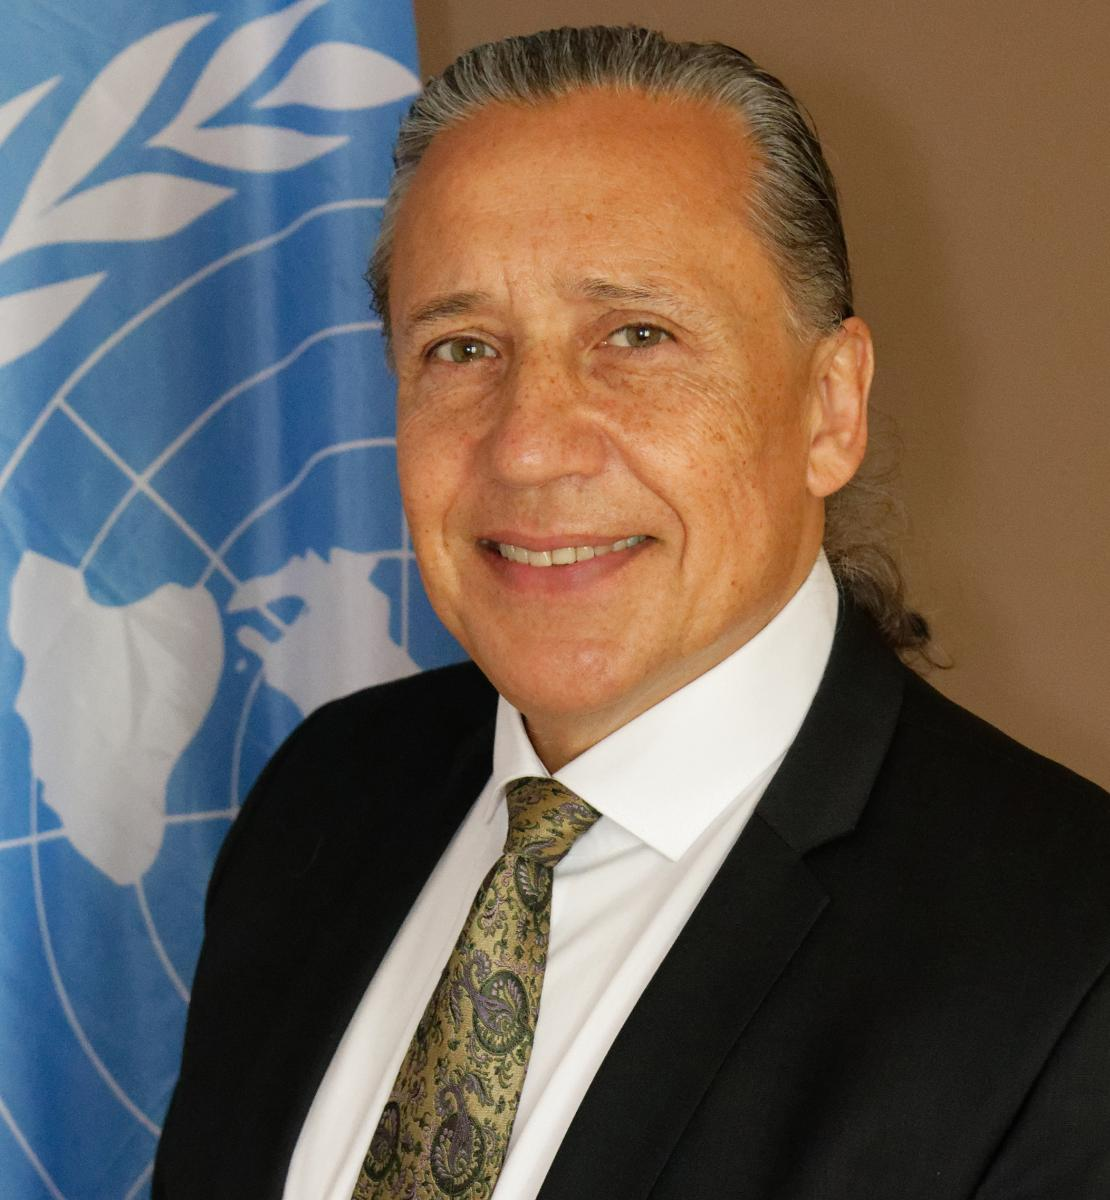 Official photo shows Gustavo González in front of the UN flag.